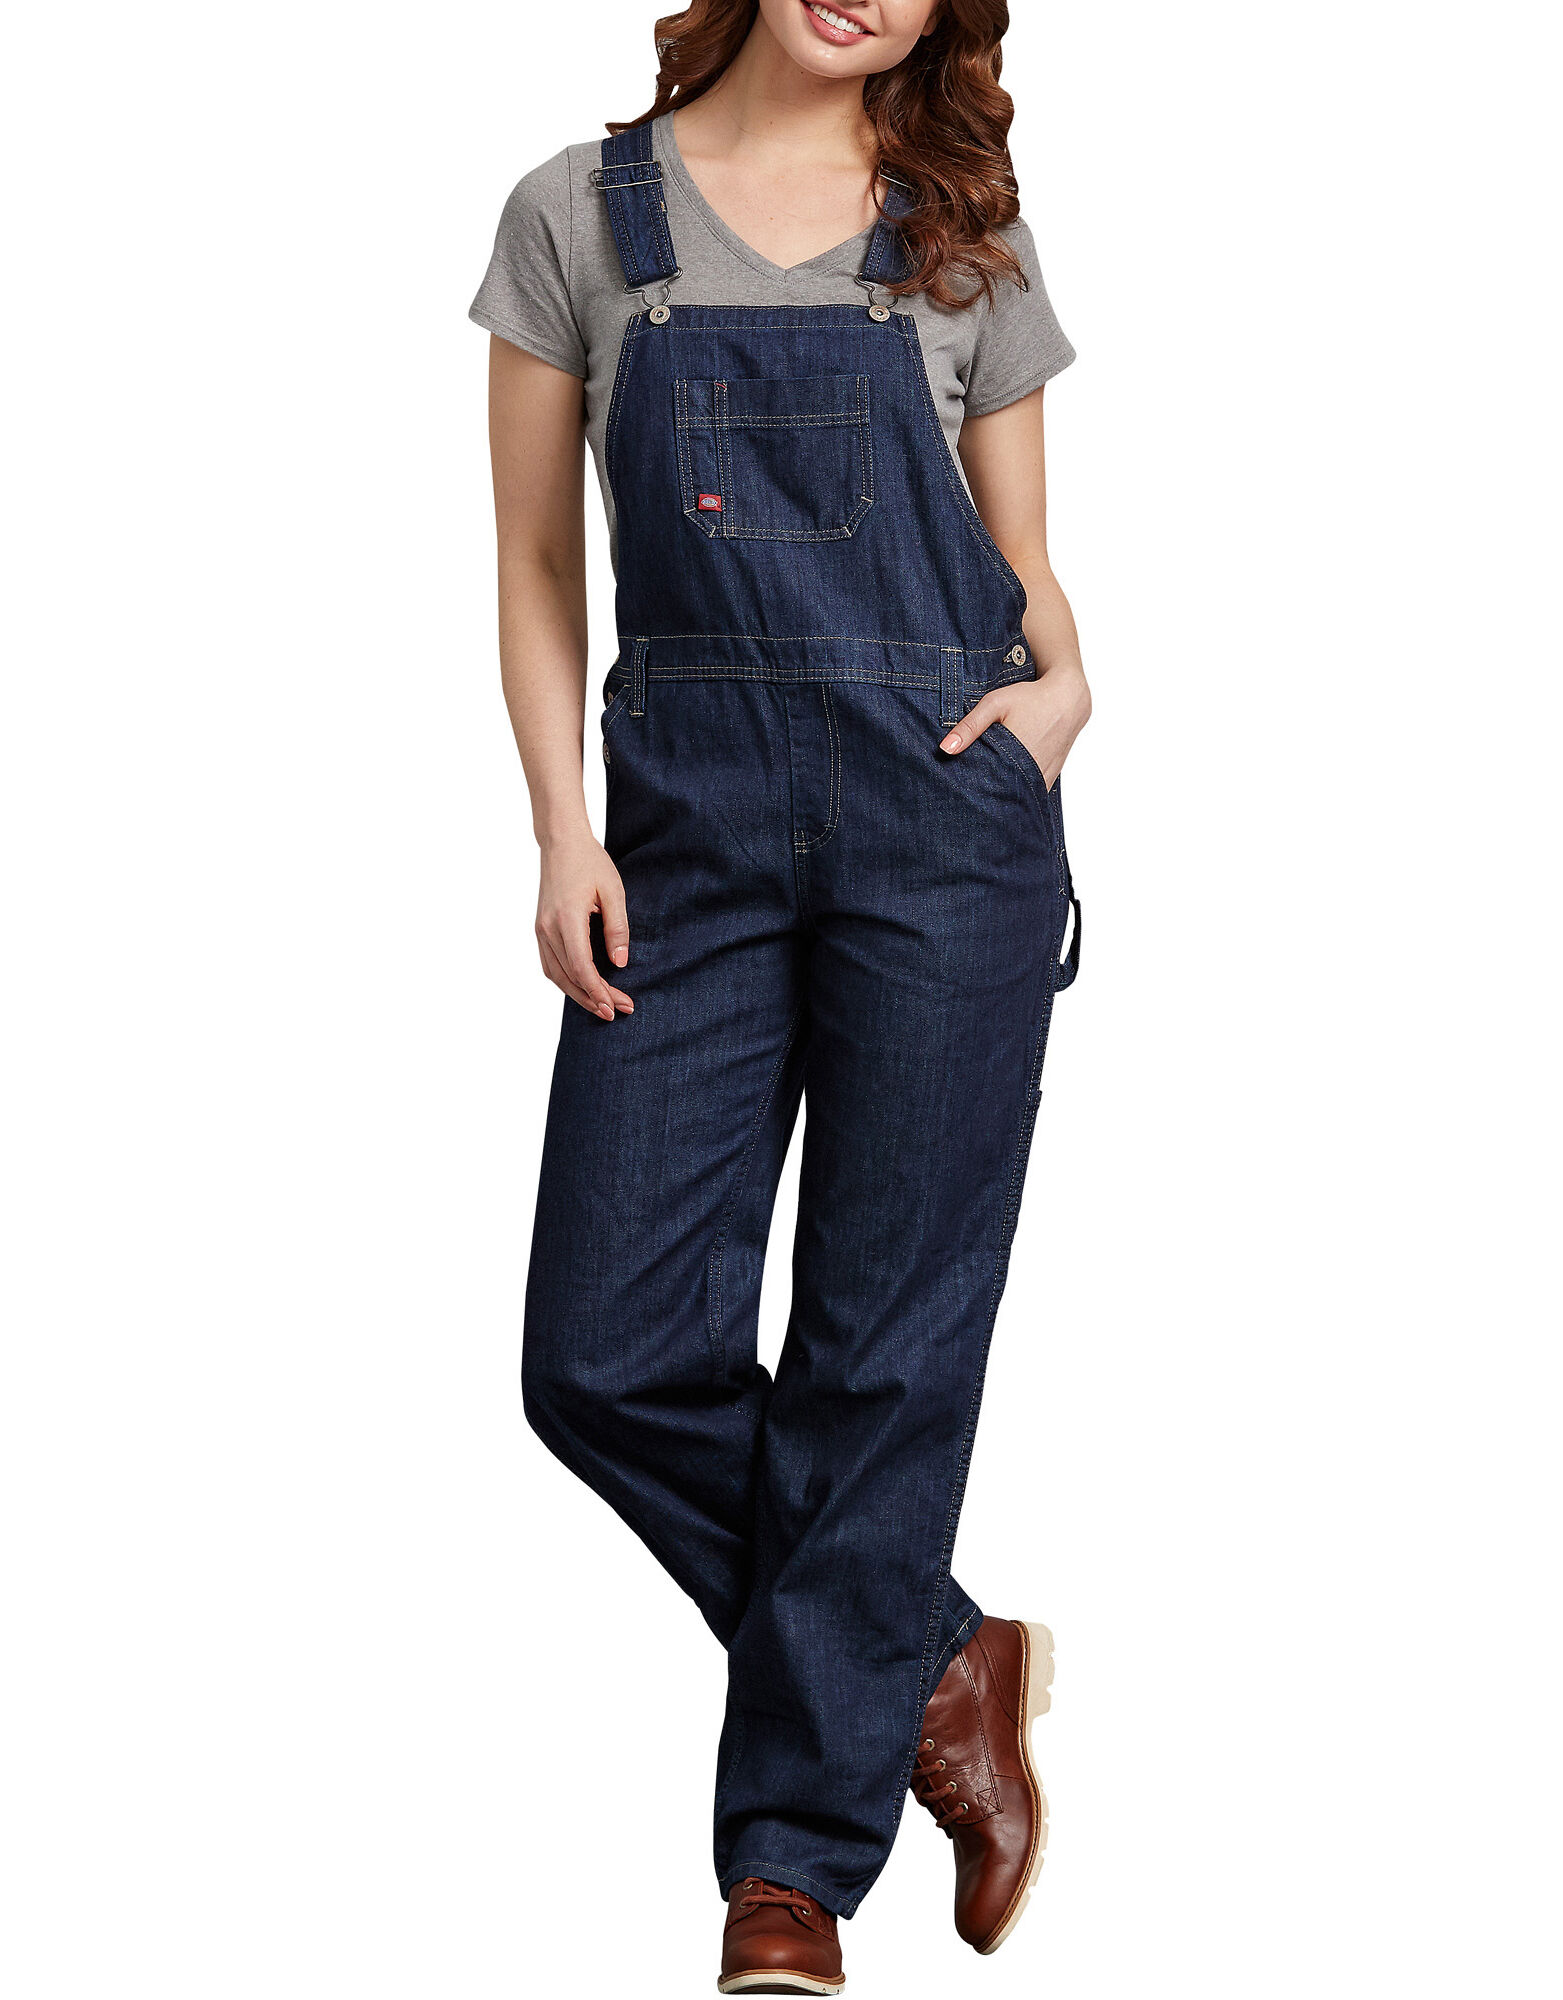 Jean Overalls Dickies Canada